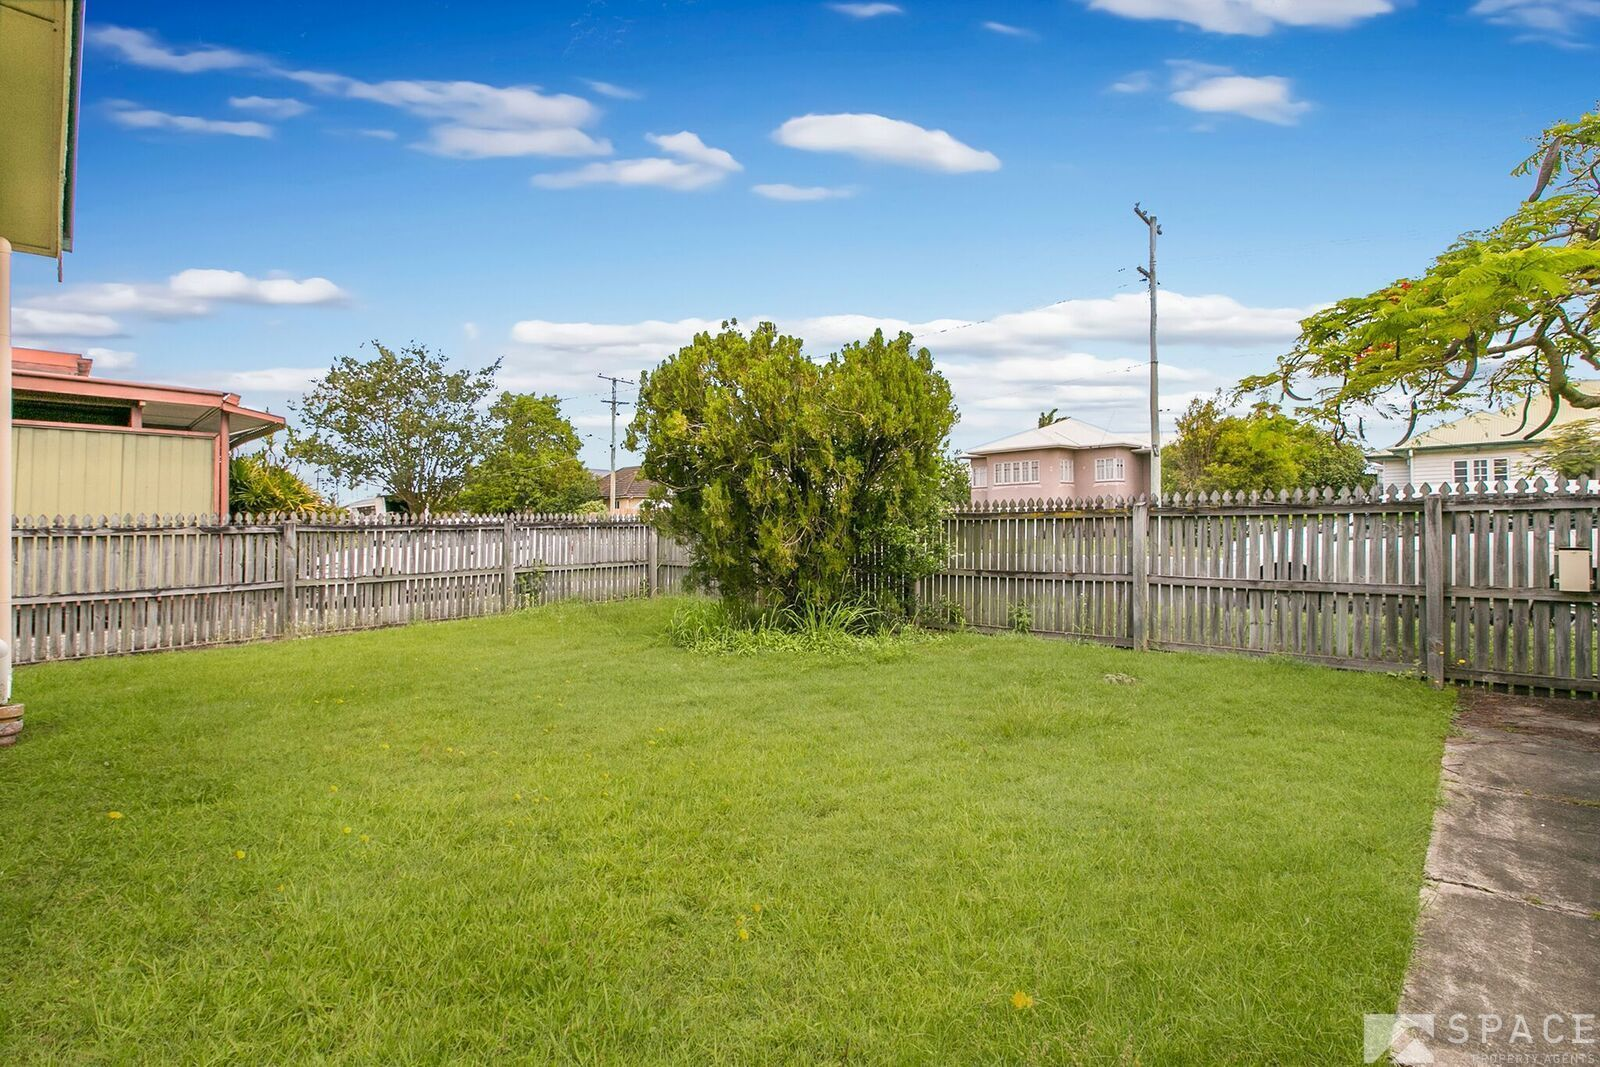 2/82 Raceview Avenue, Hendra QLD 4011, Image 2